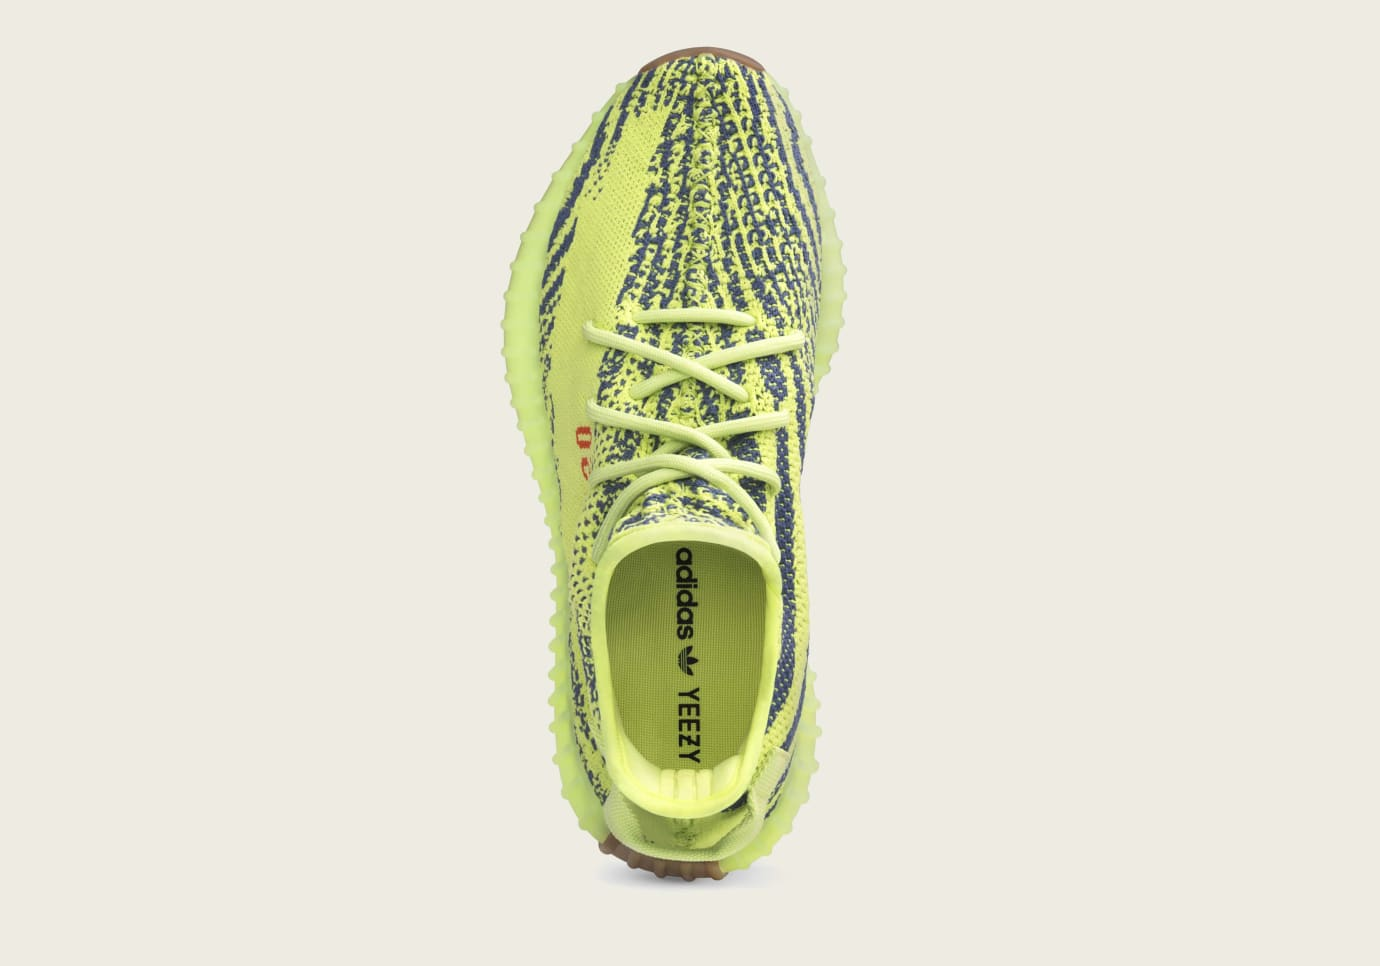 c533e8efc2c Image via Yeezy Mafia · Adidas Yeezy Boost 350 V2  Semi Frozen Yellow   B37572 (Top)